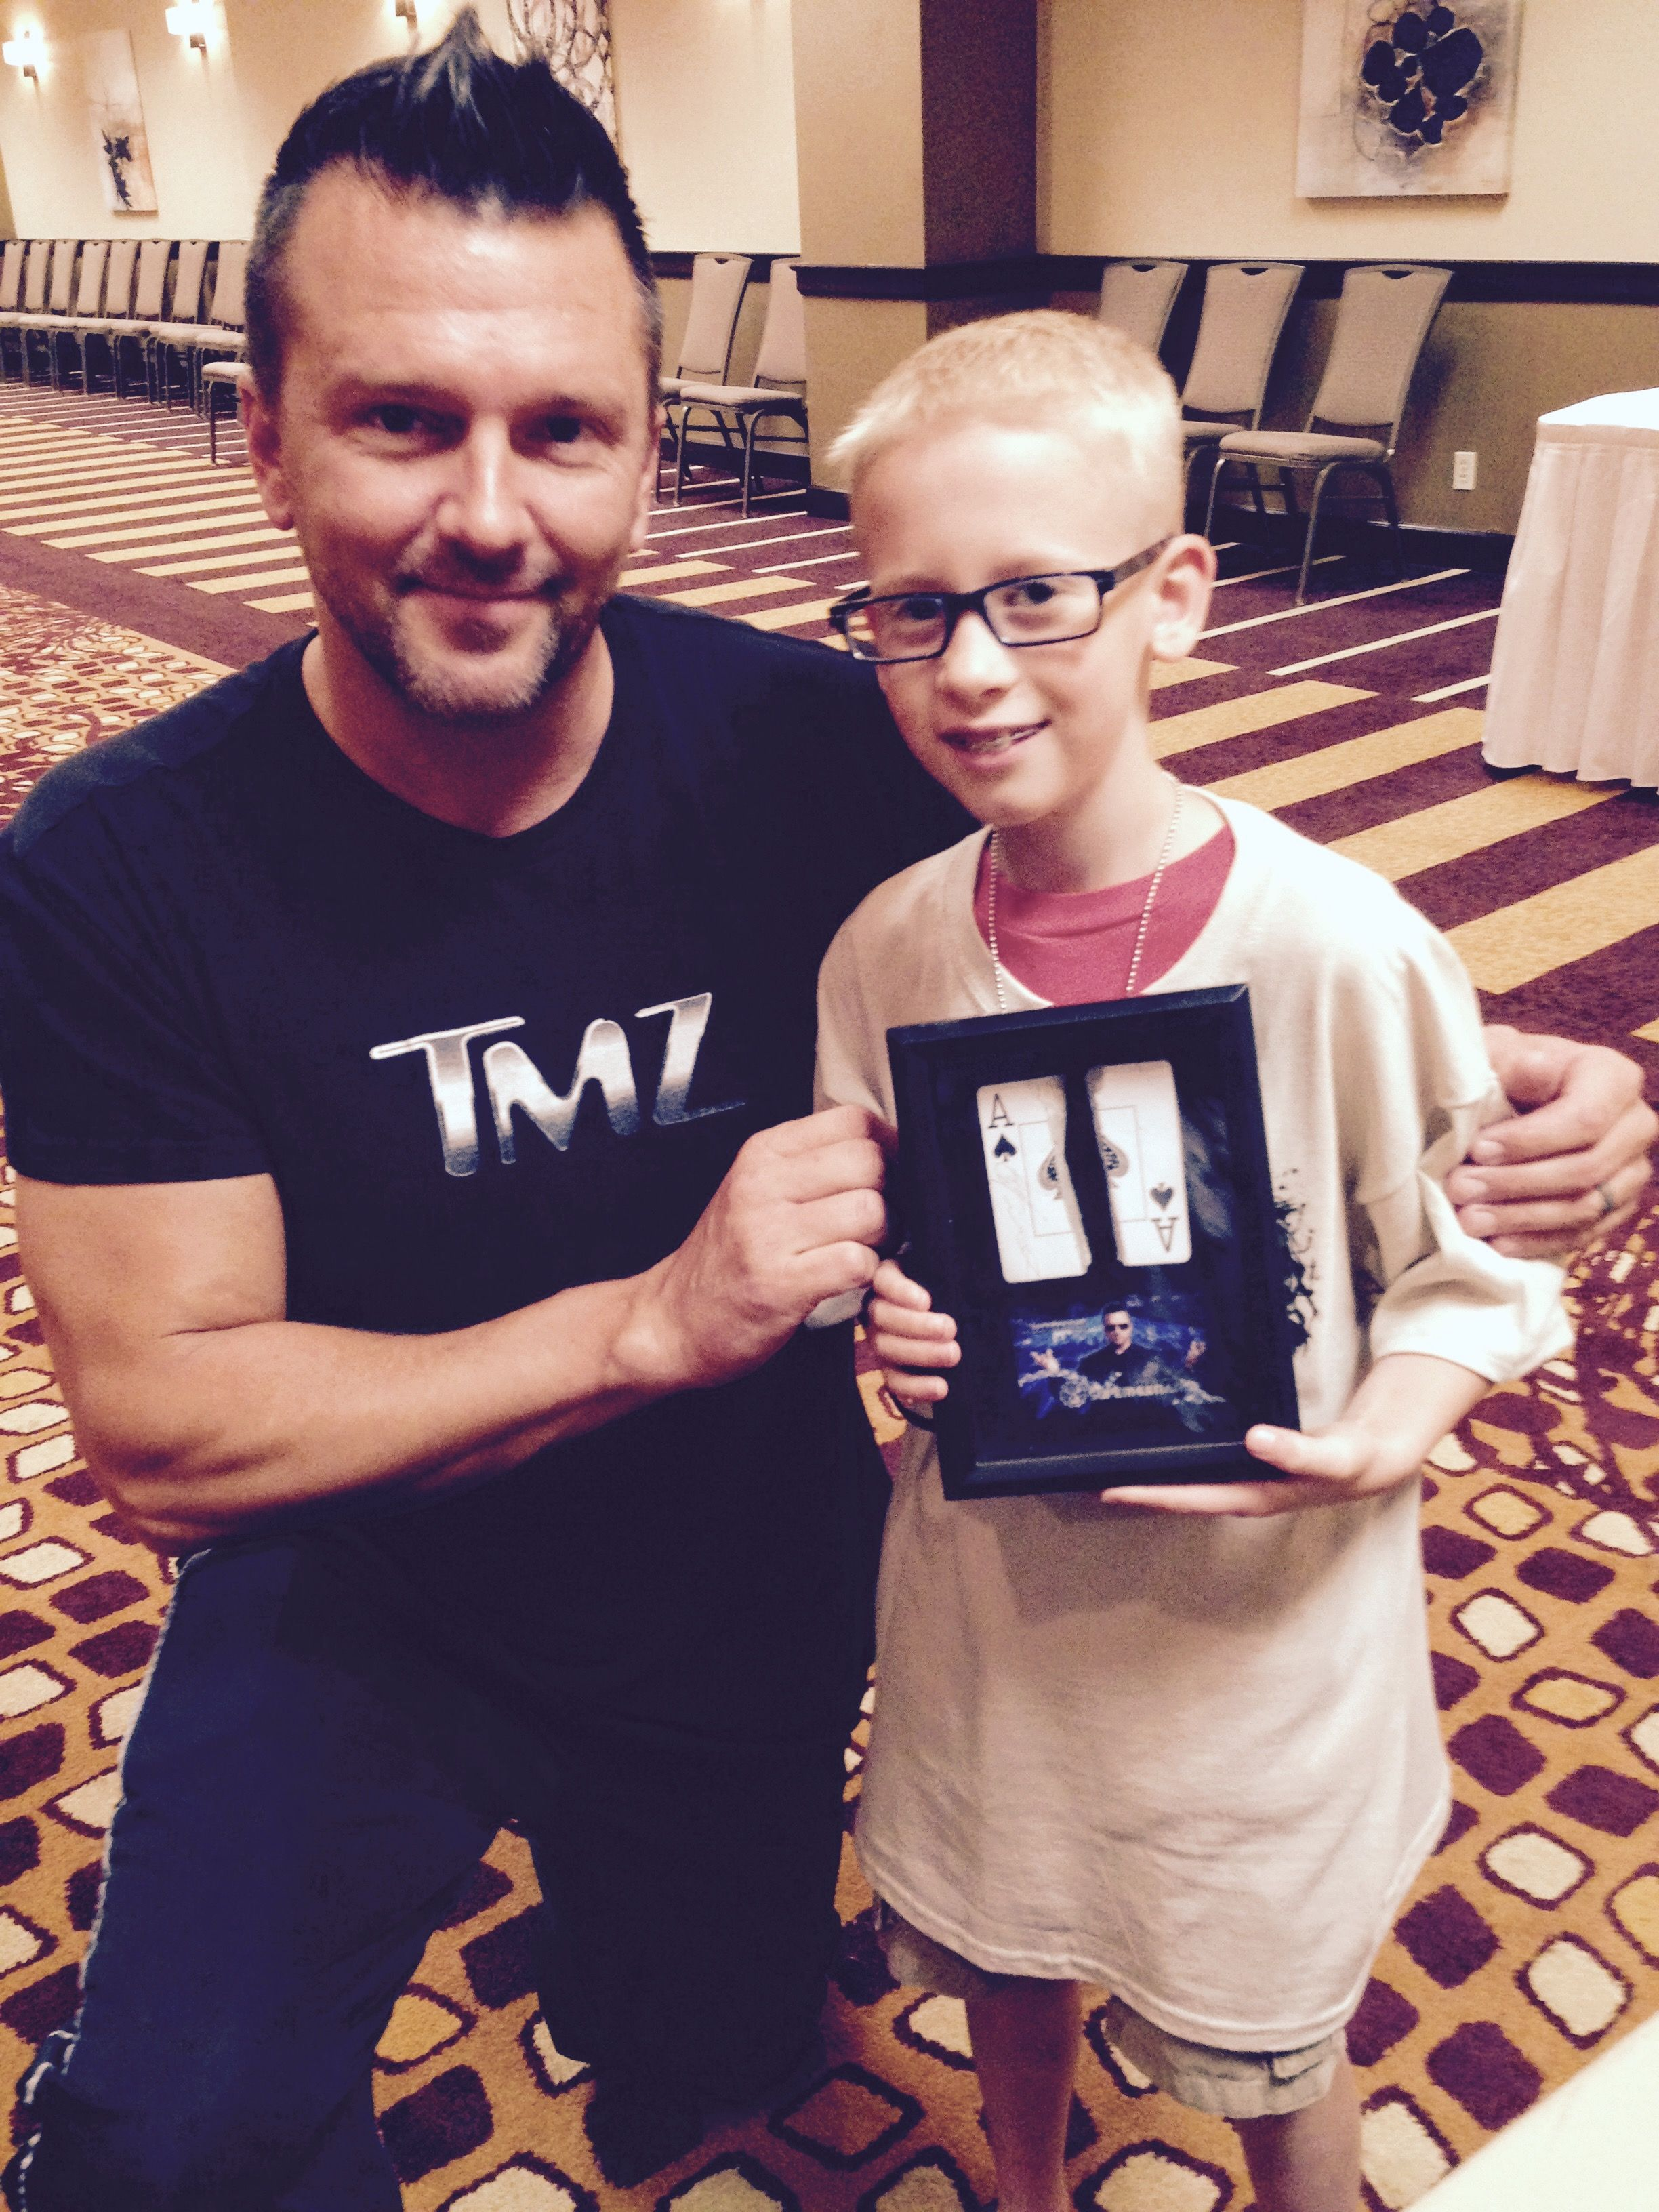 Chad netherland with martial arts karate kid riley parker